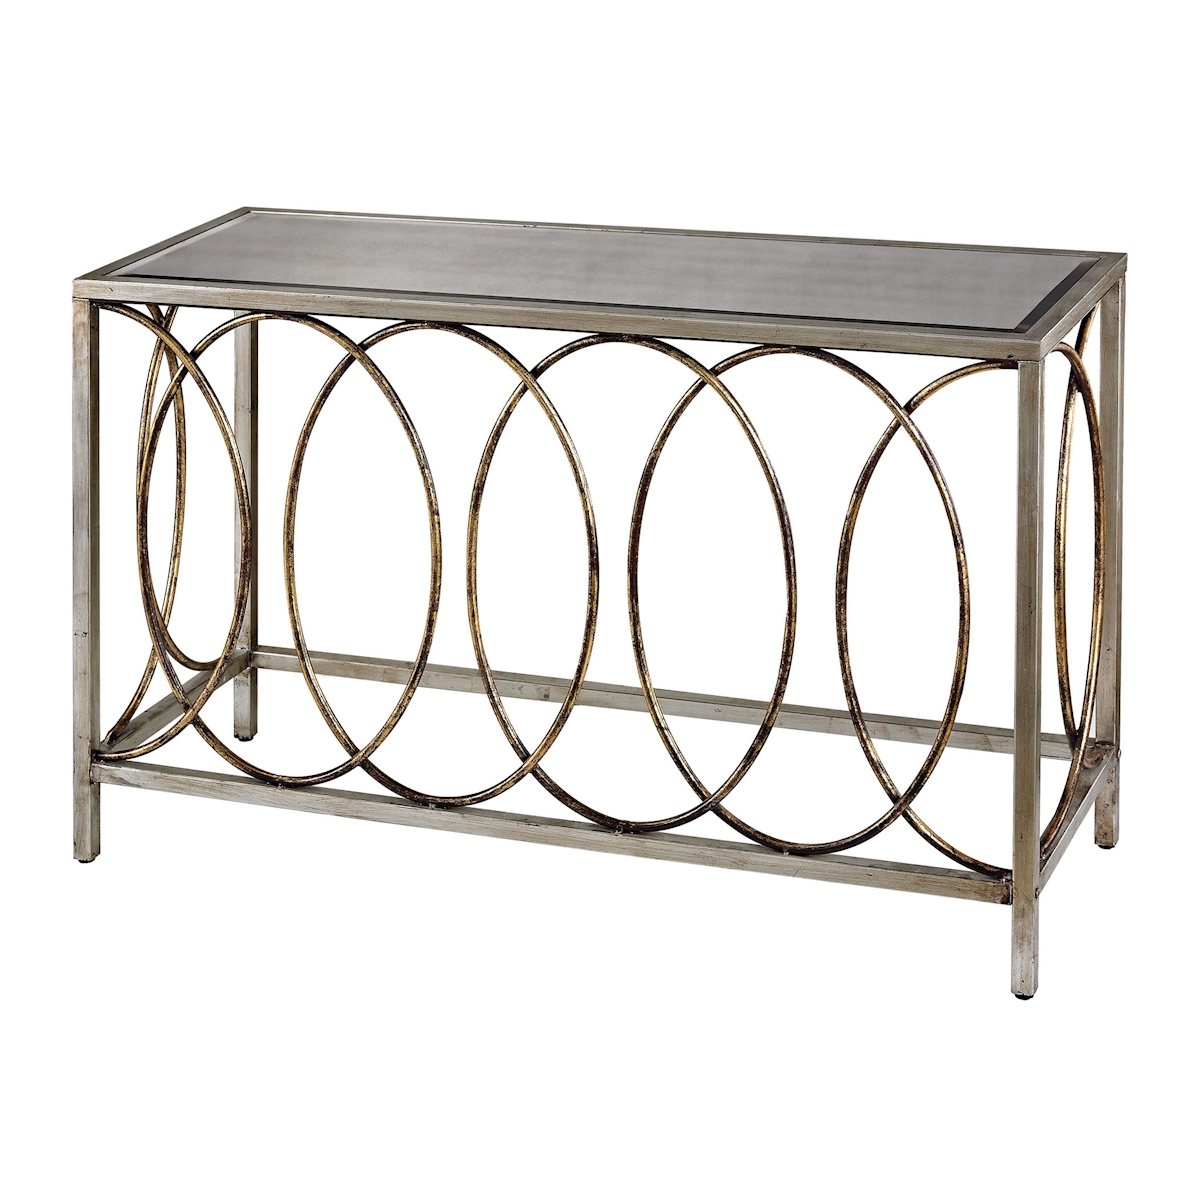 Retford Rings Console Table with Mirrored Top | Elk Home